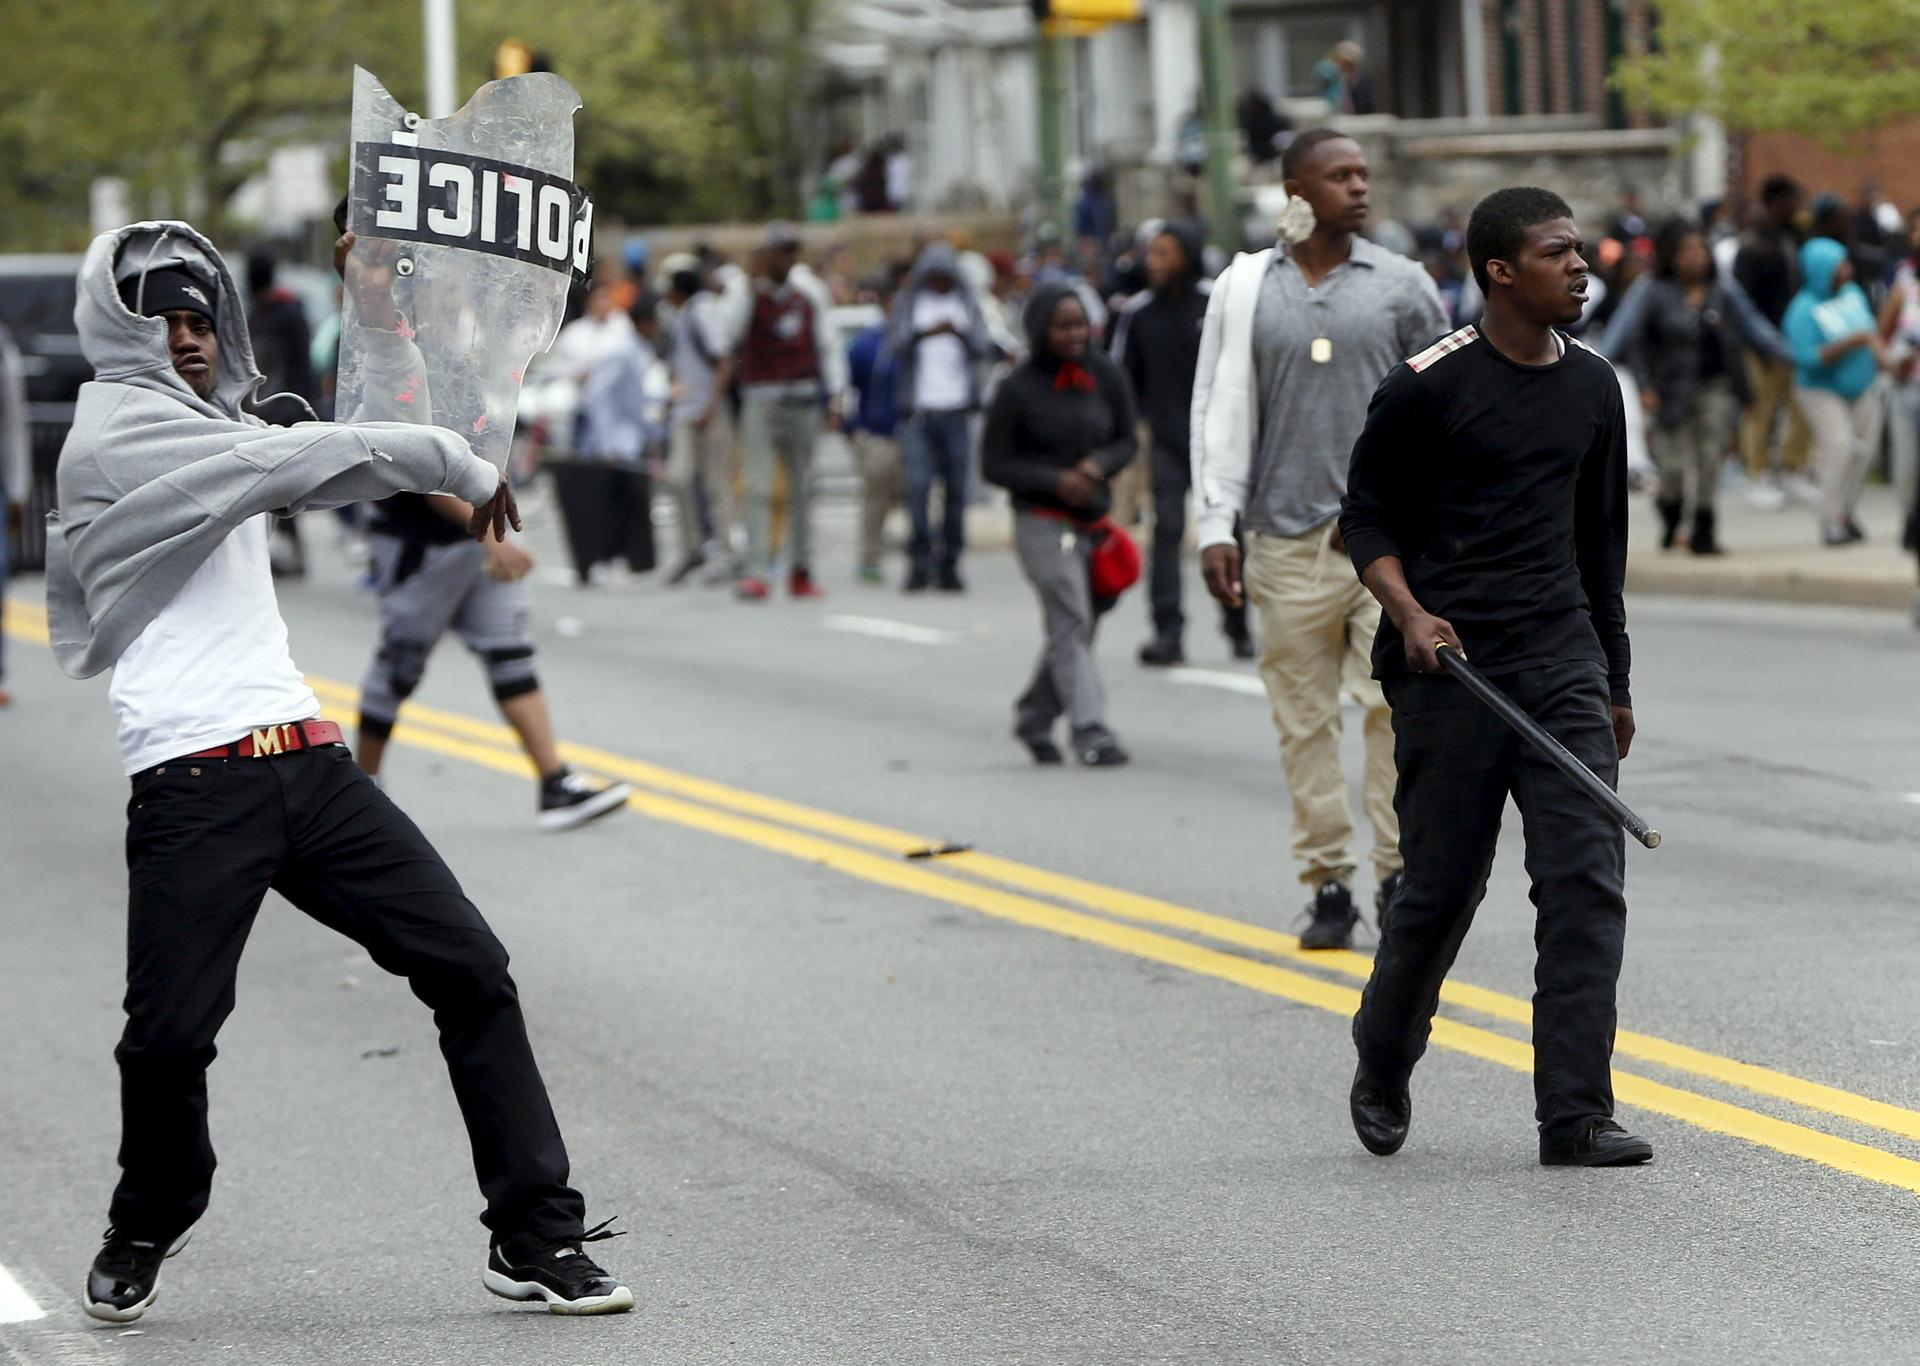 Baltimore police officers in riot gear push protestors back along - Demonstrators Threw Rocks At The Police